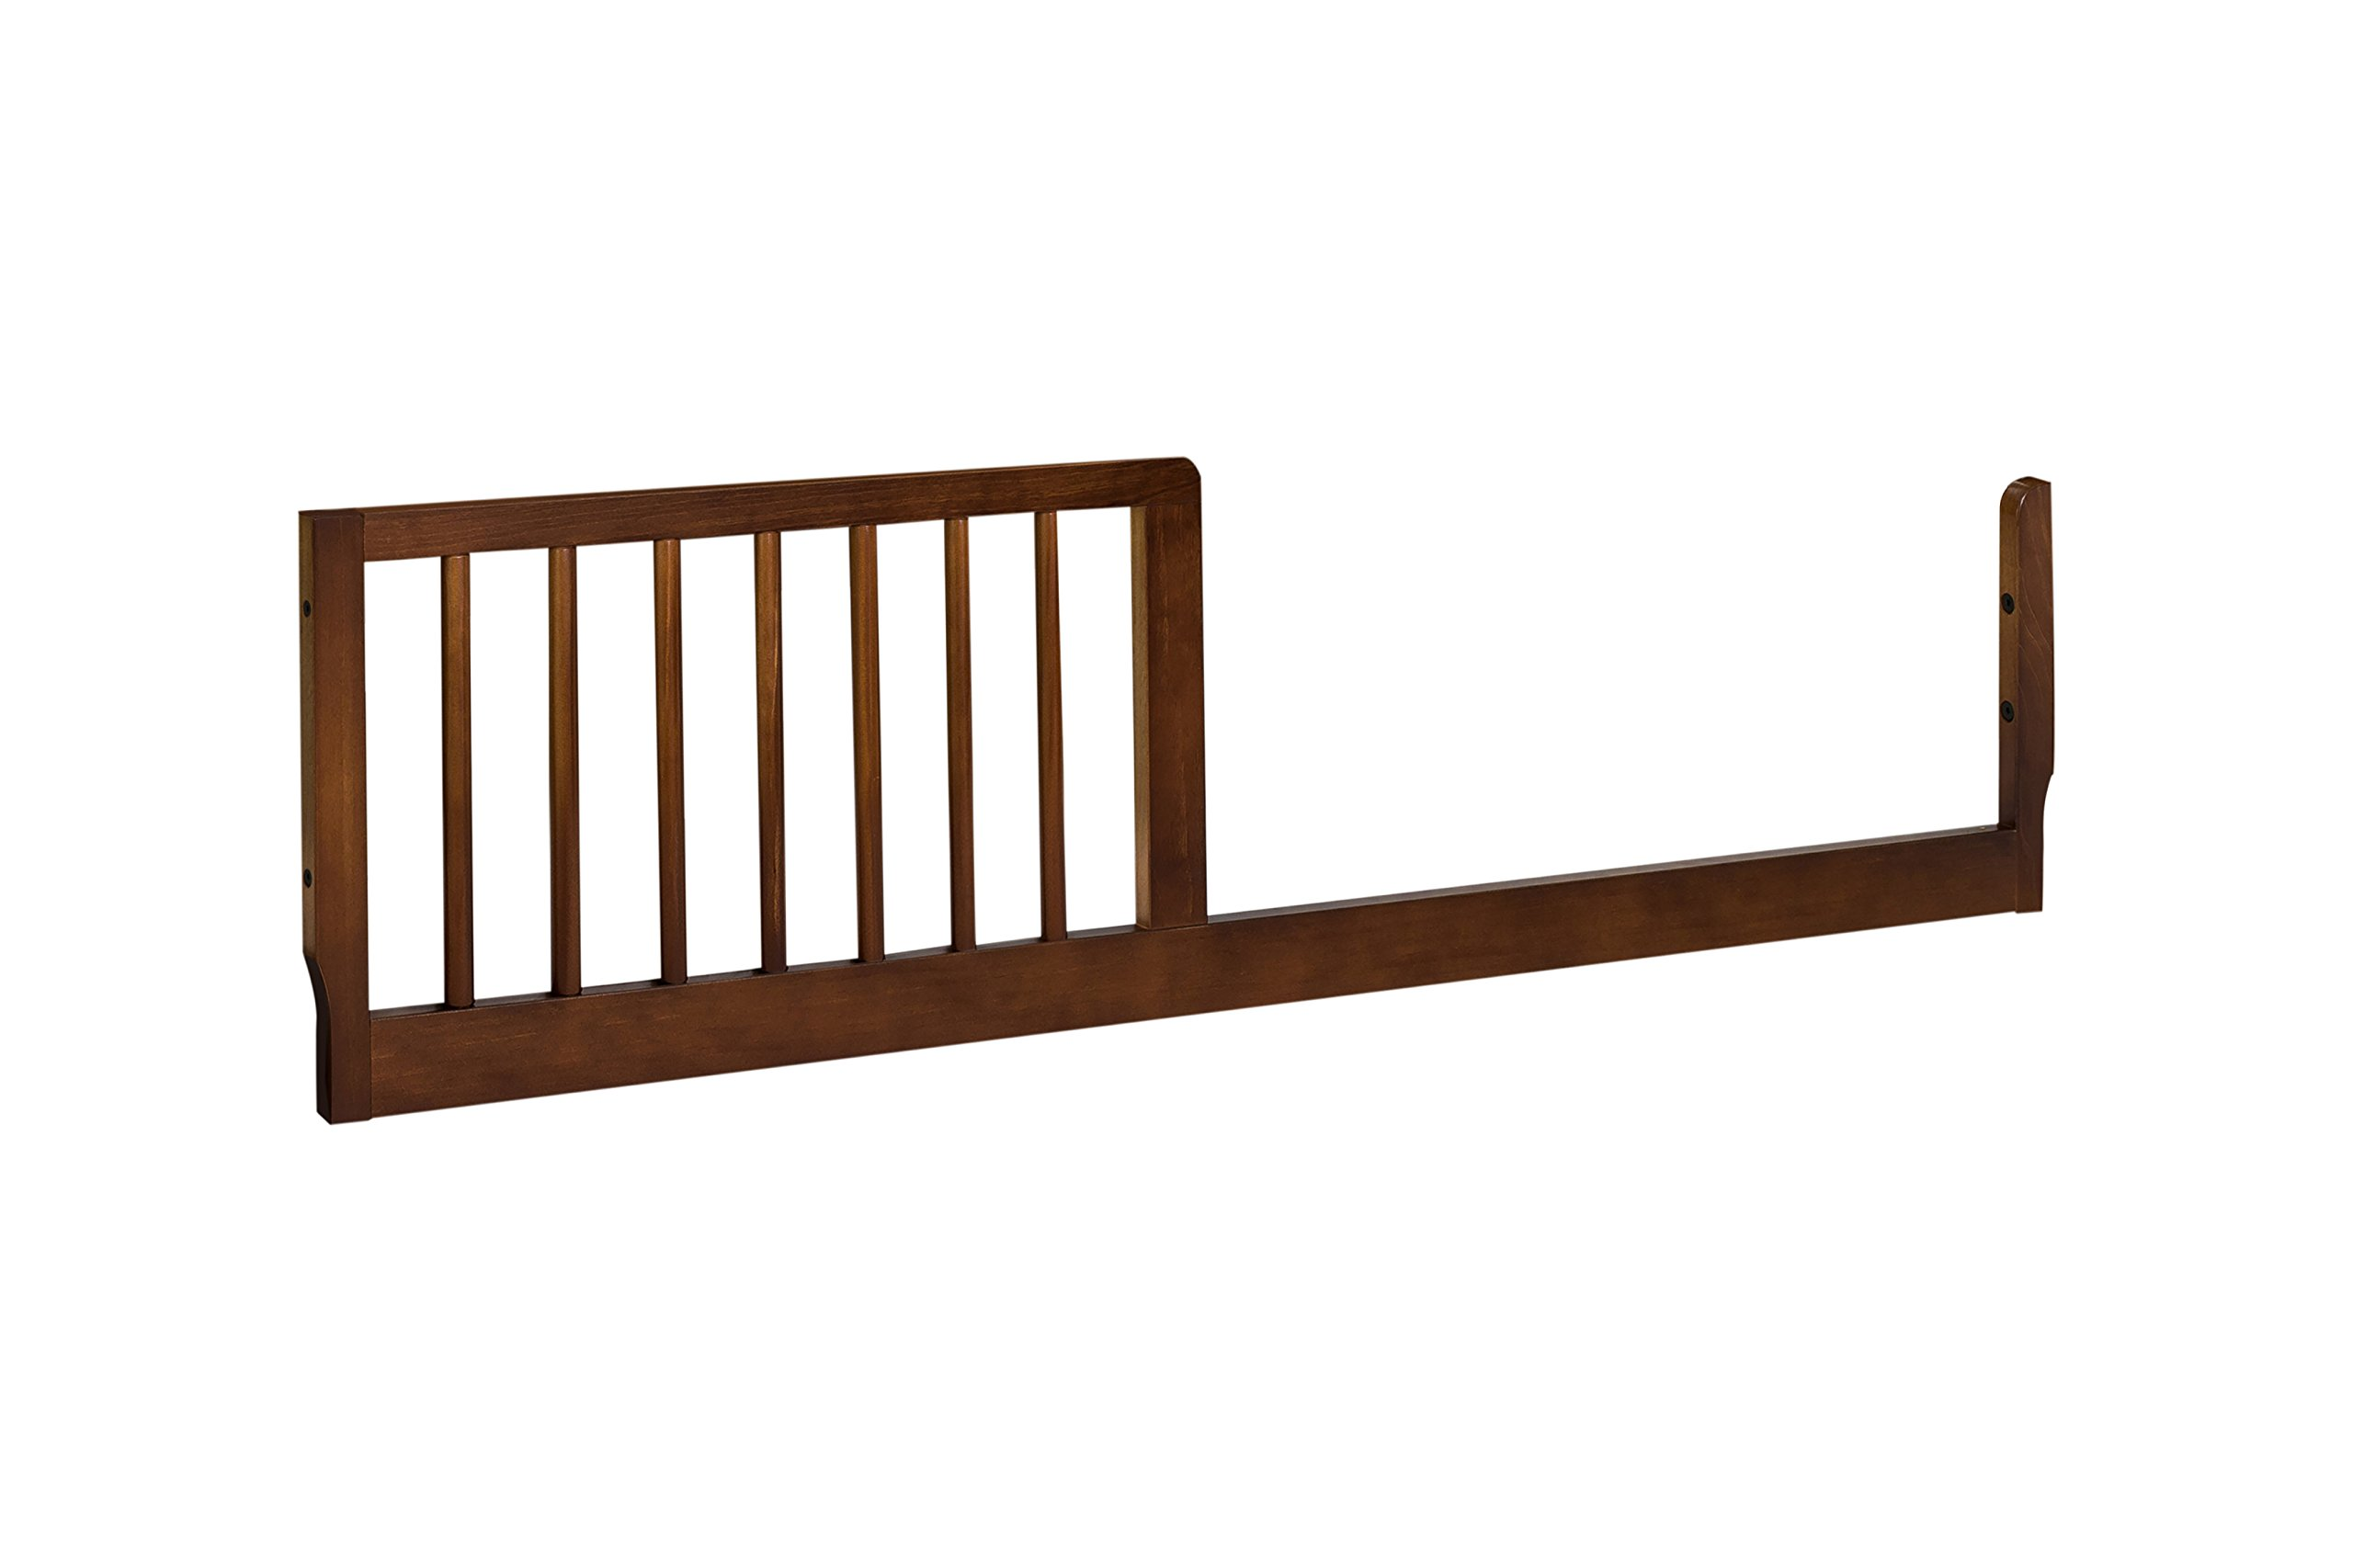 Carter's by DaVinci Toddler Bed Conversion Kit (M11799), Espresso by Carter's by DaVinci